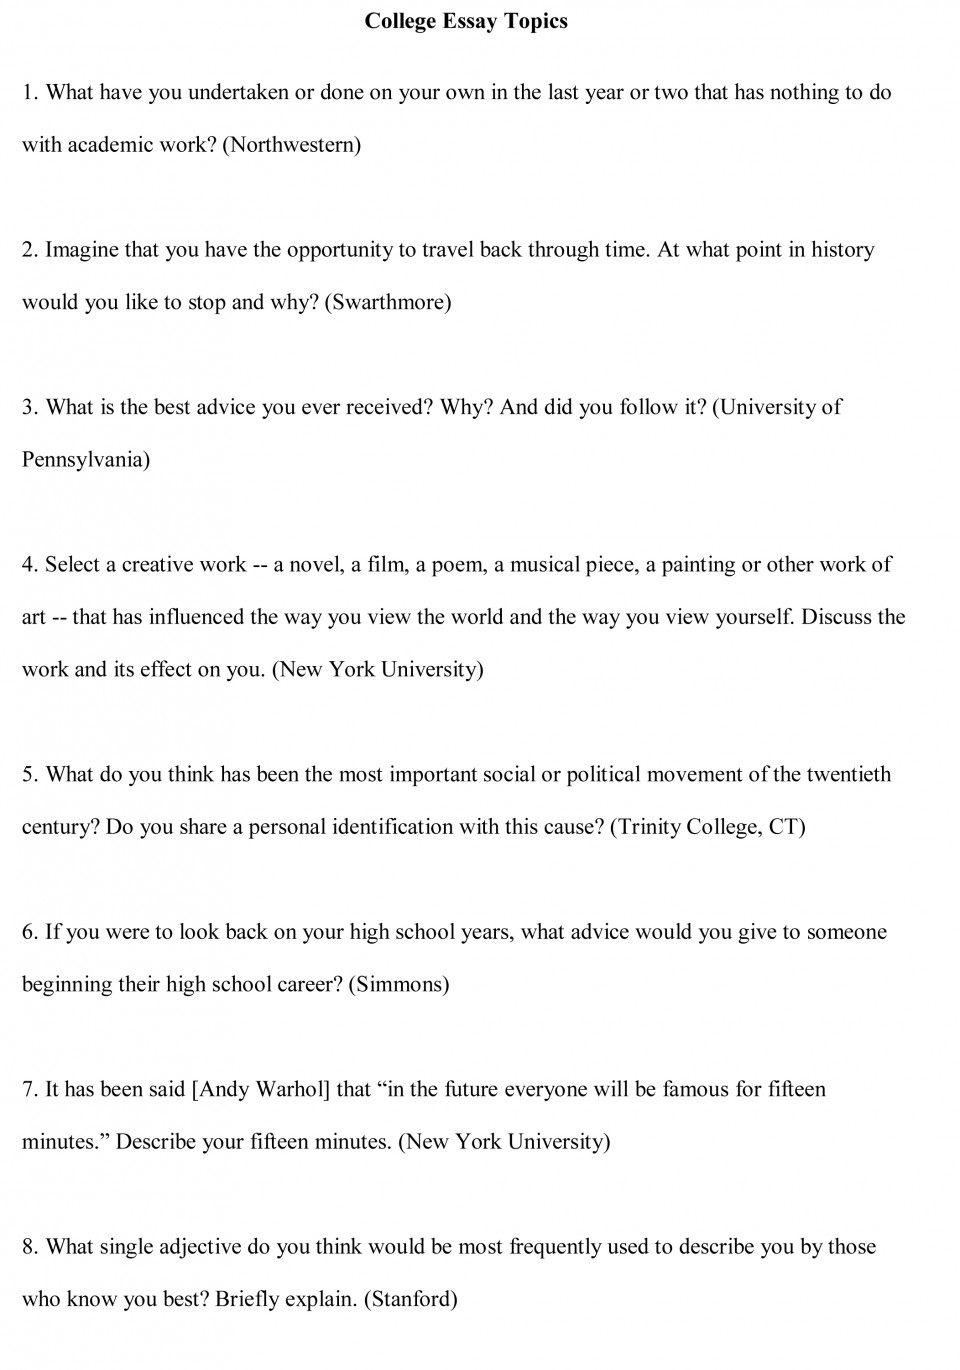 003 College Essay Topics Free Sample1 Prompts Impressive Texas Application 2018 Ideas 960